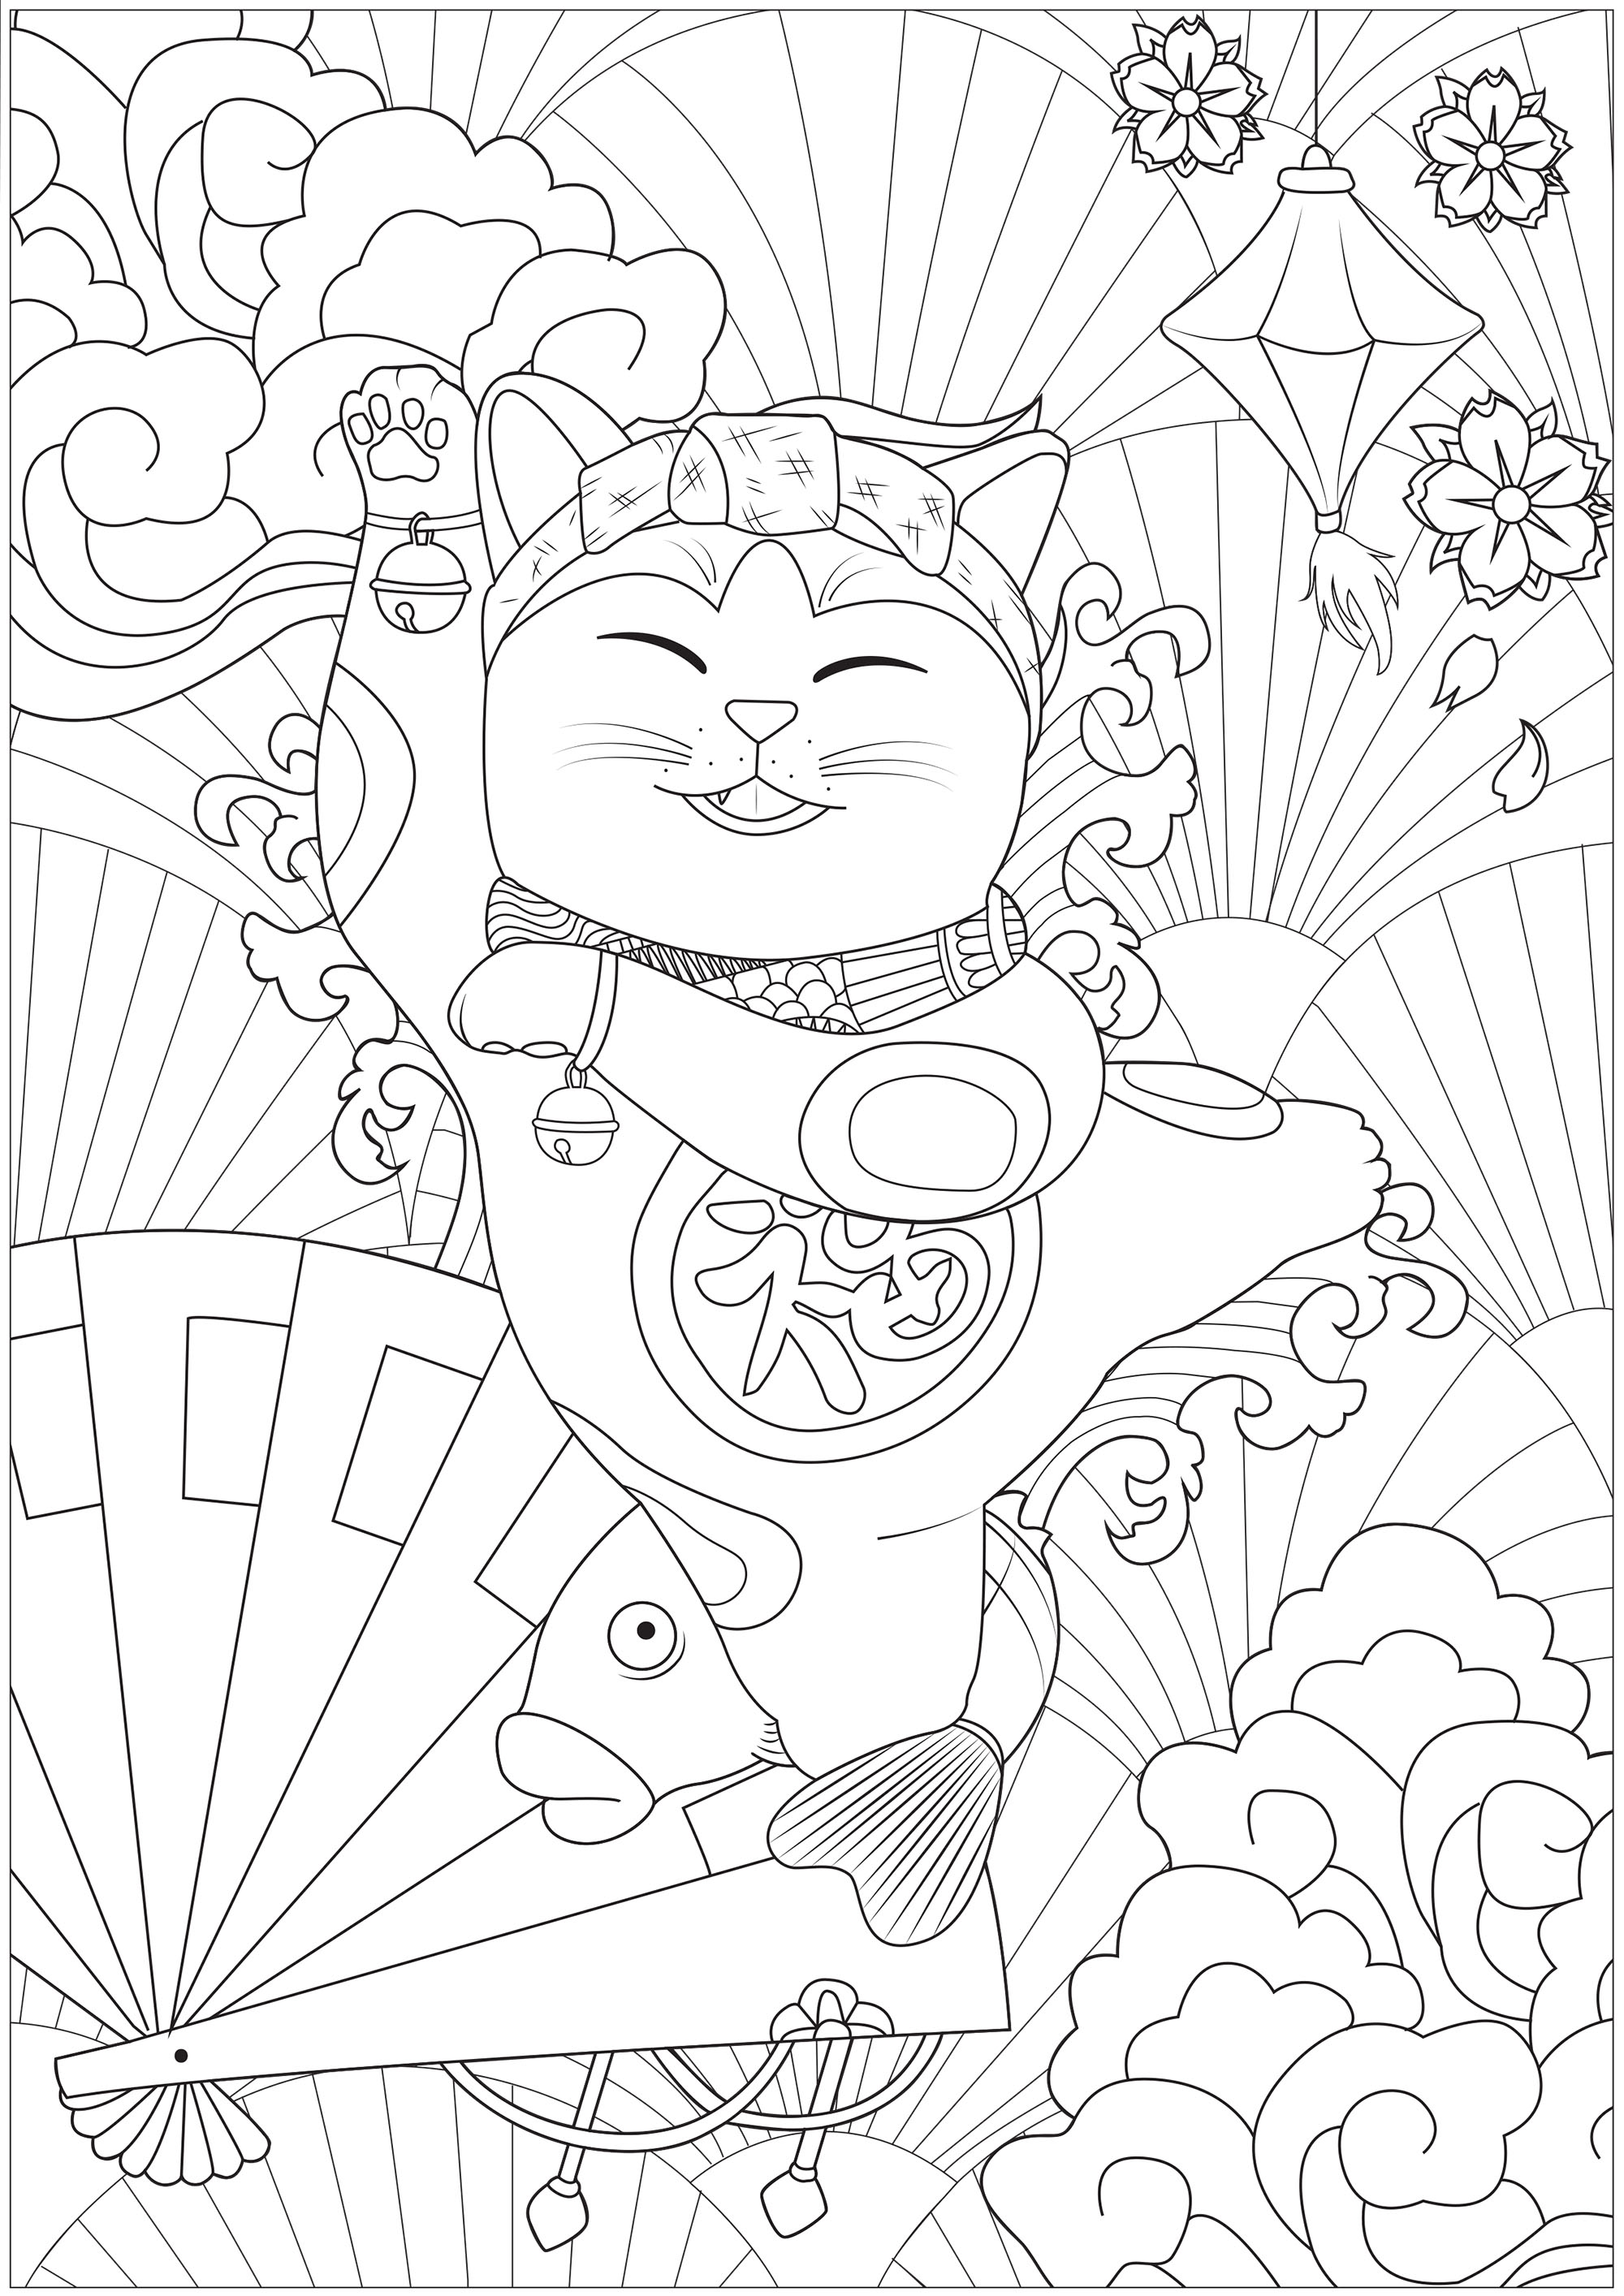 Dancing Maneki Neko cat